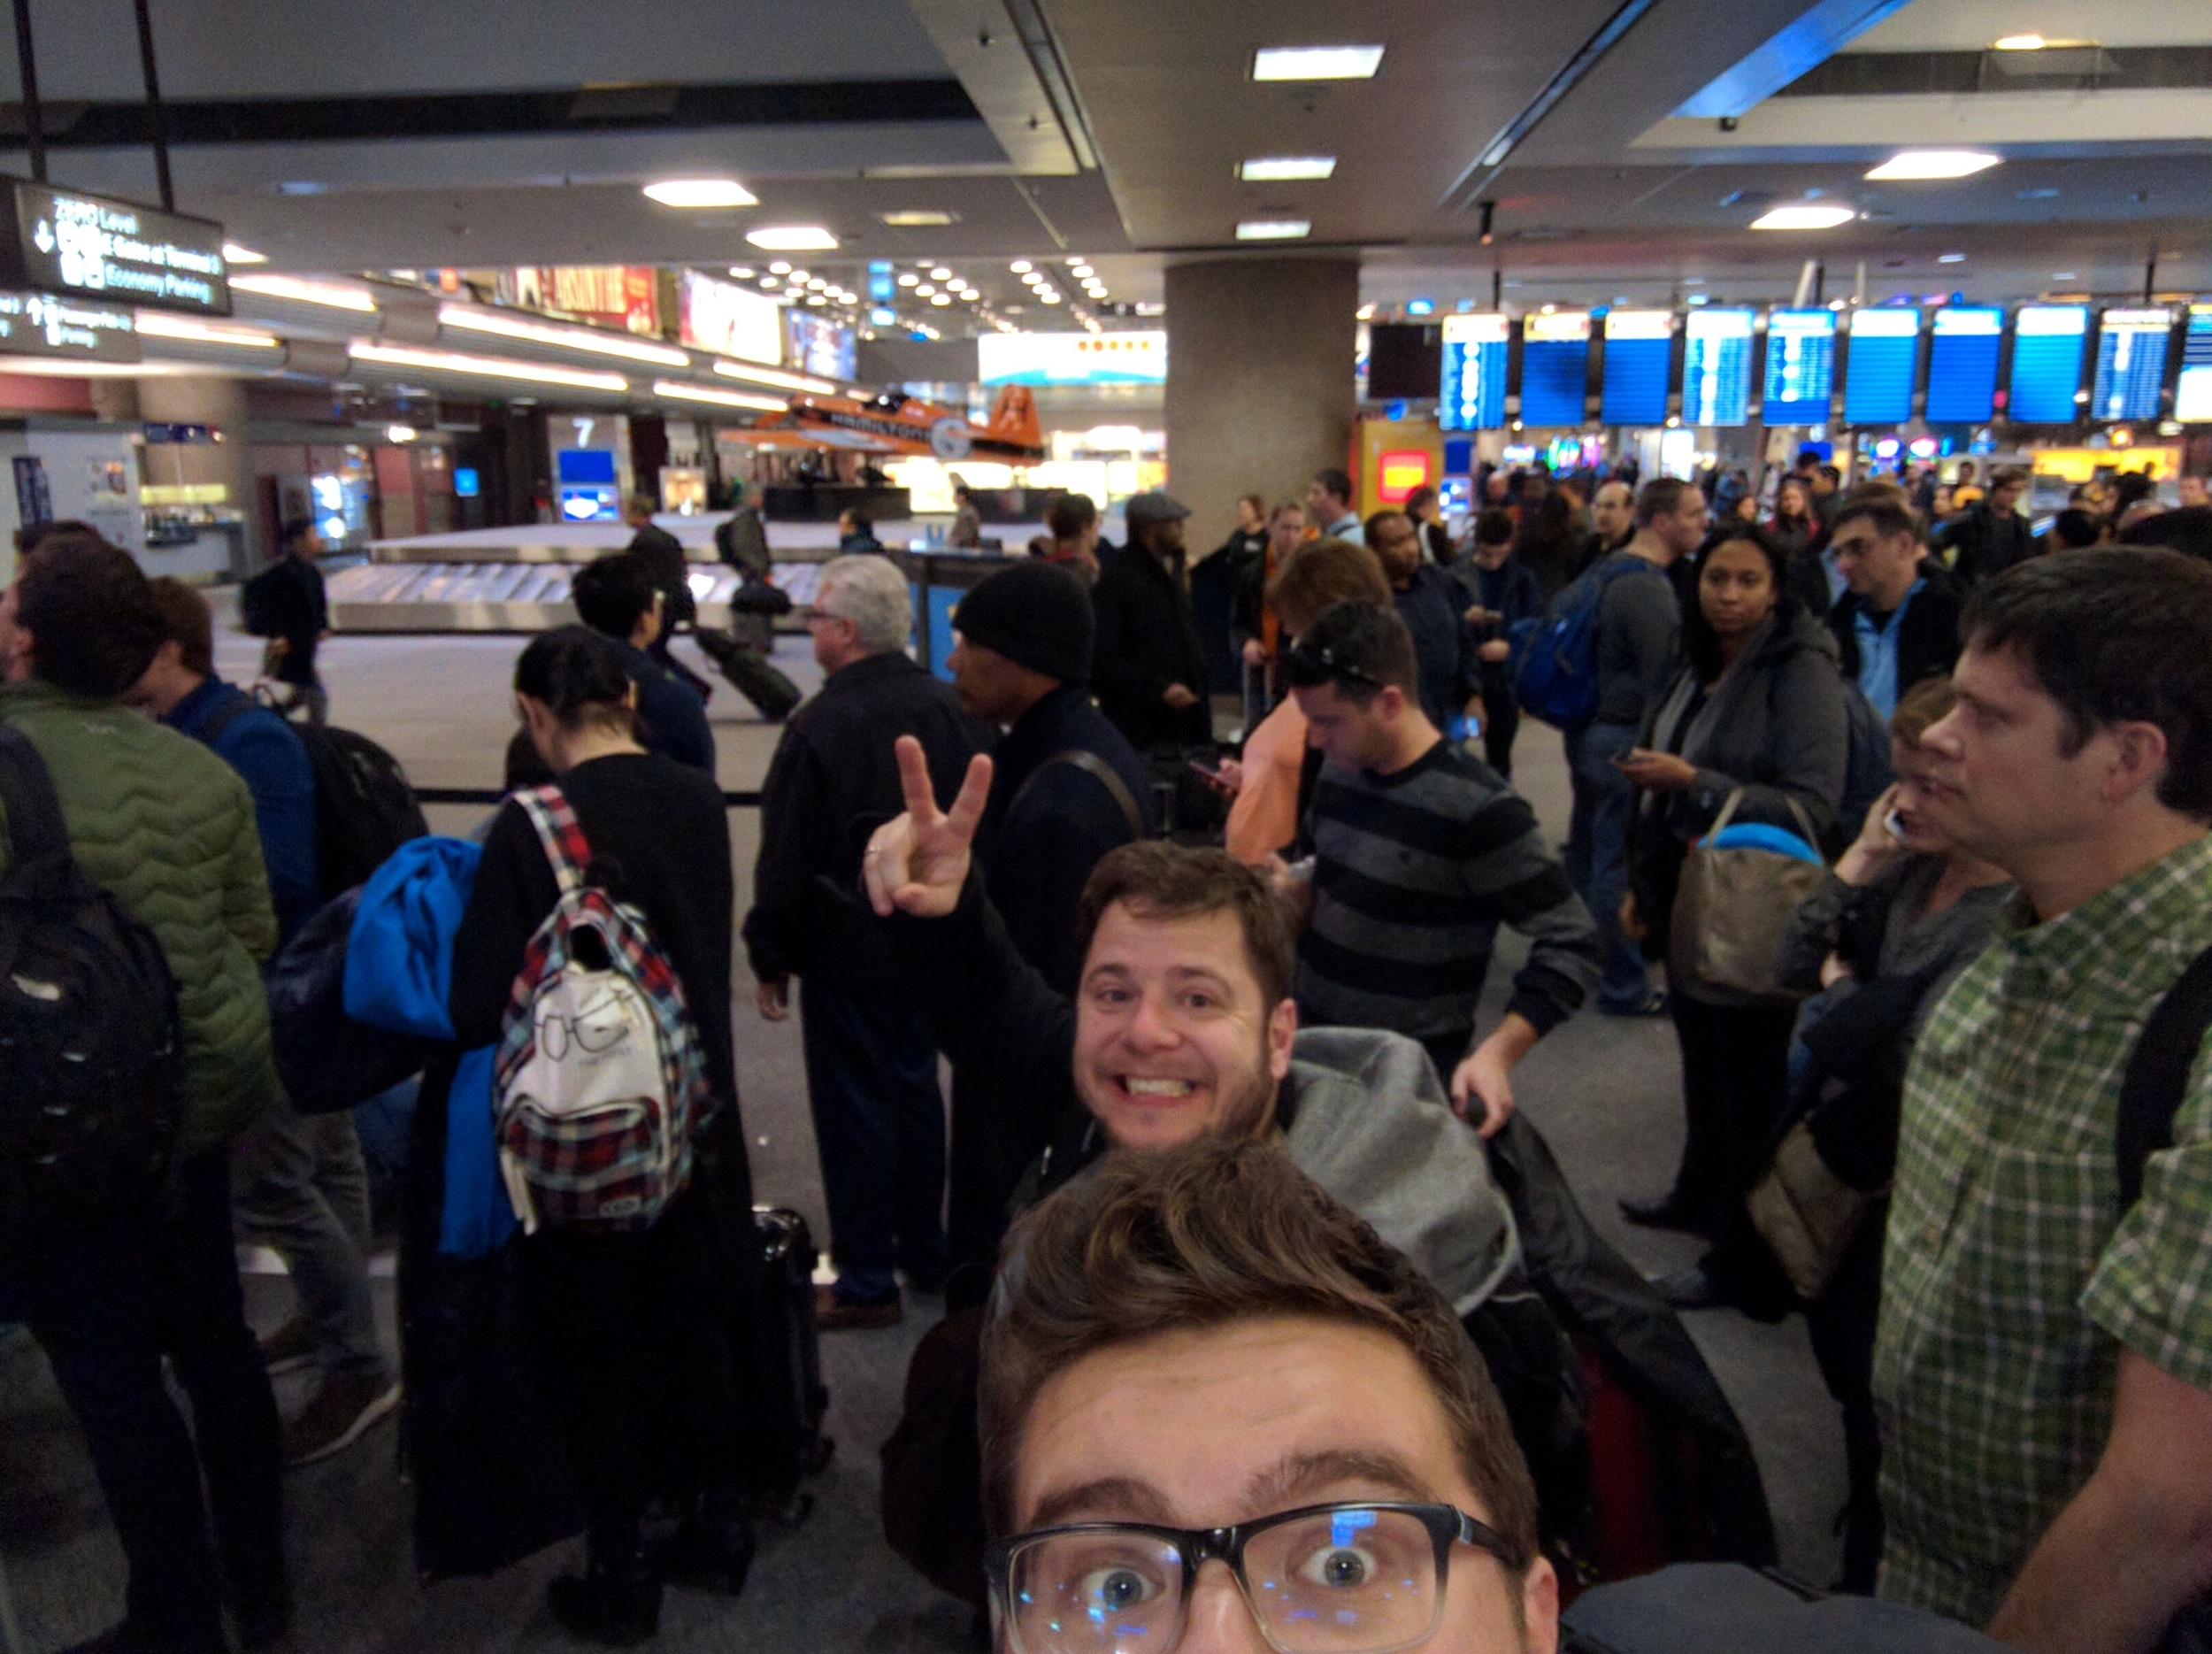 CES Check-In at Las Vegas airport - Flight was delayed 3hr due to rain in the desert